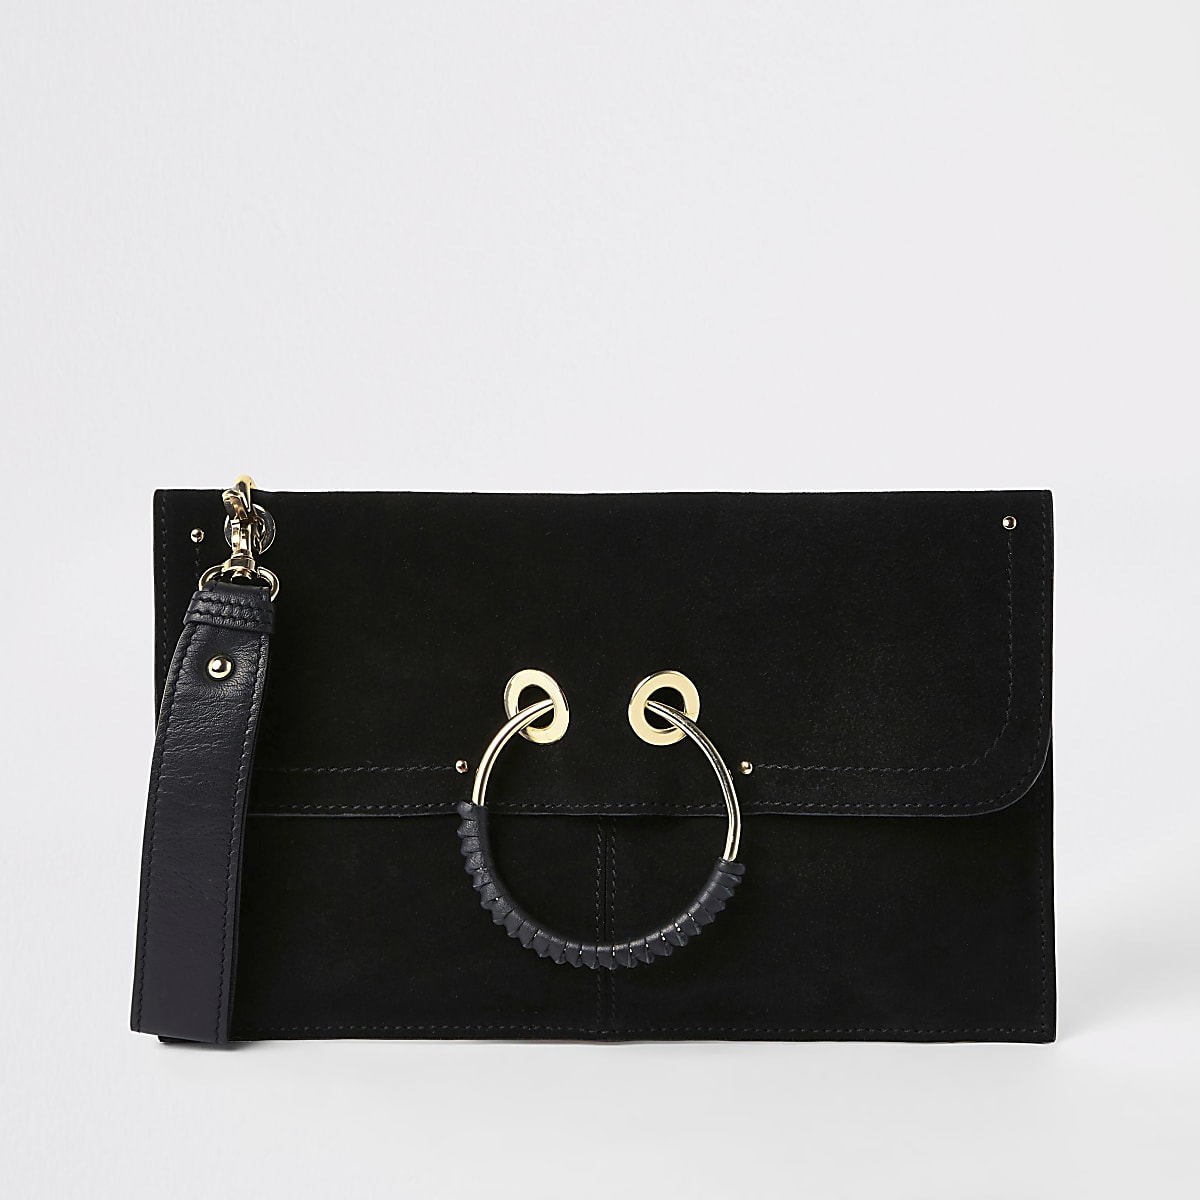 Black leather hoop front pouch clutch bag